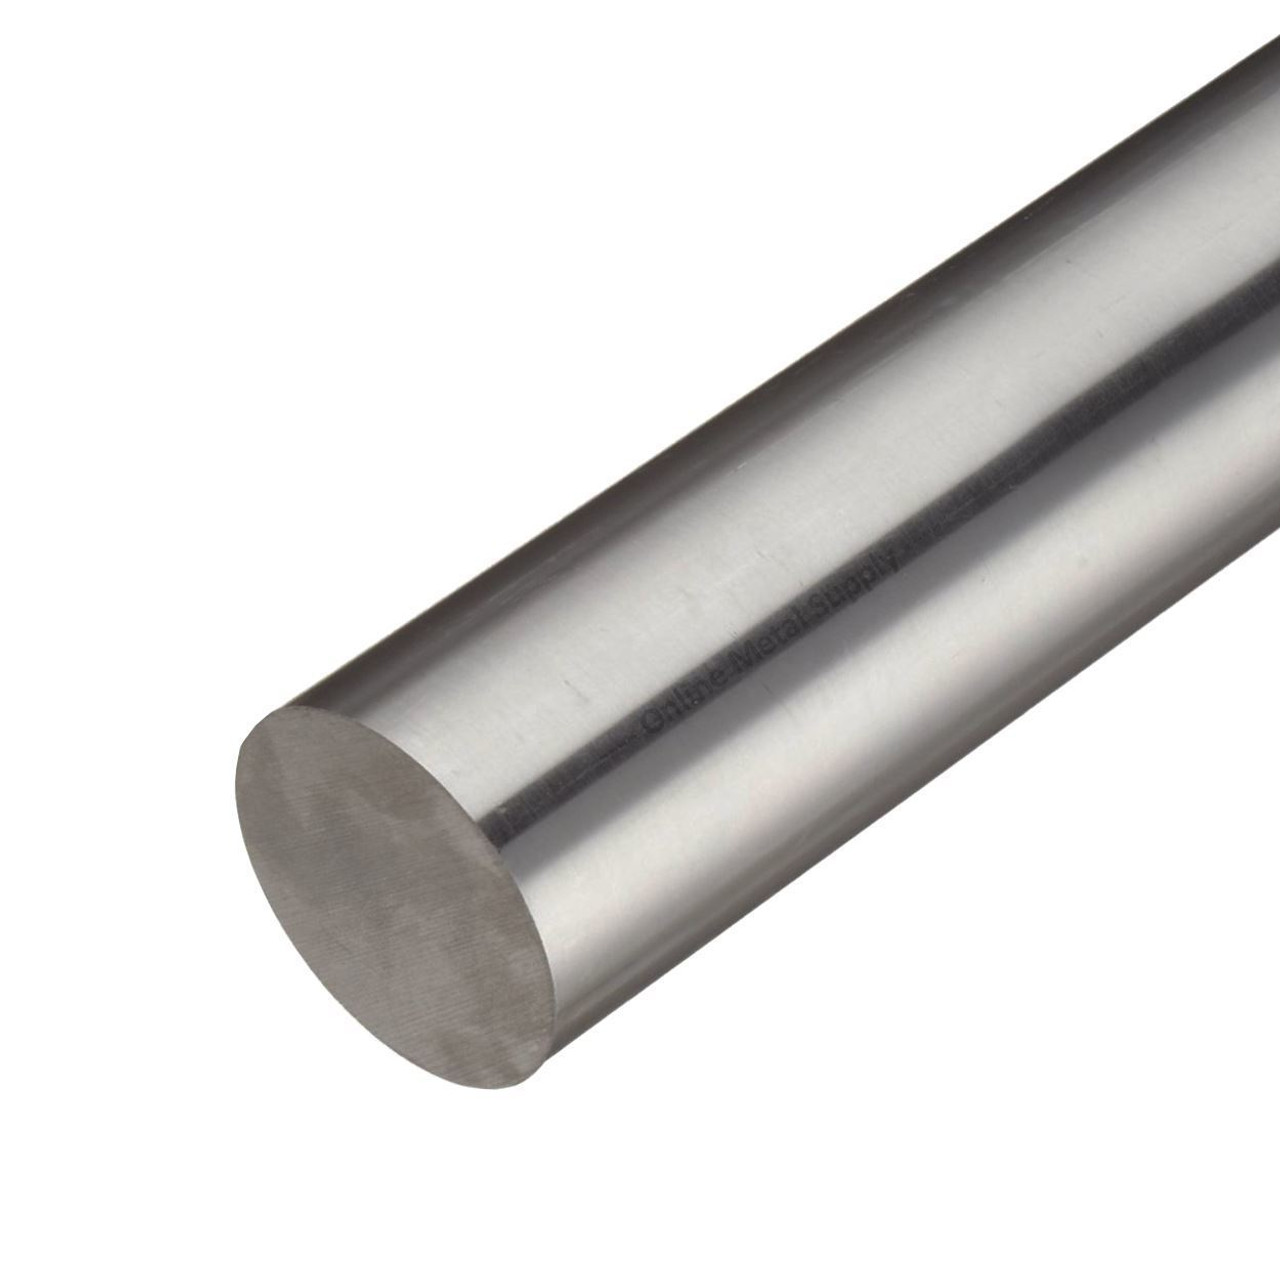 1.250 (1-1/4 inch) x 48 inches, 15-5 Cond A CF Stainless Steel Round Rod